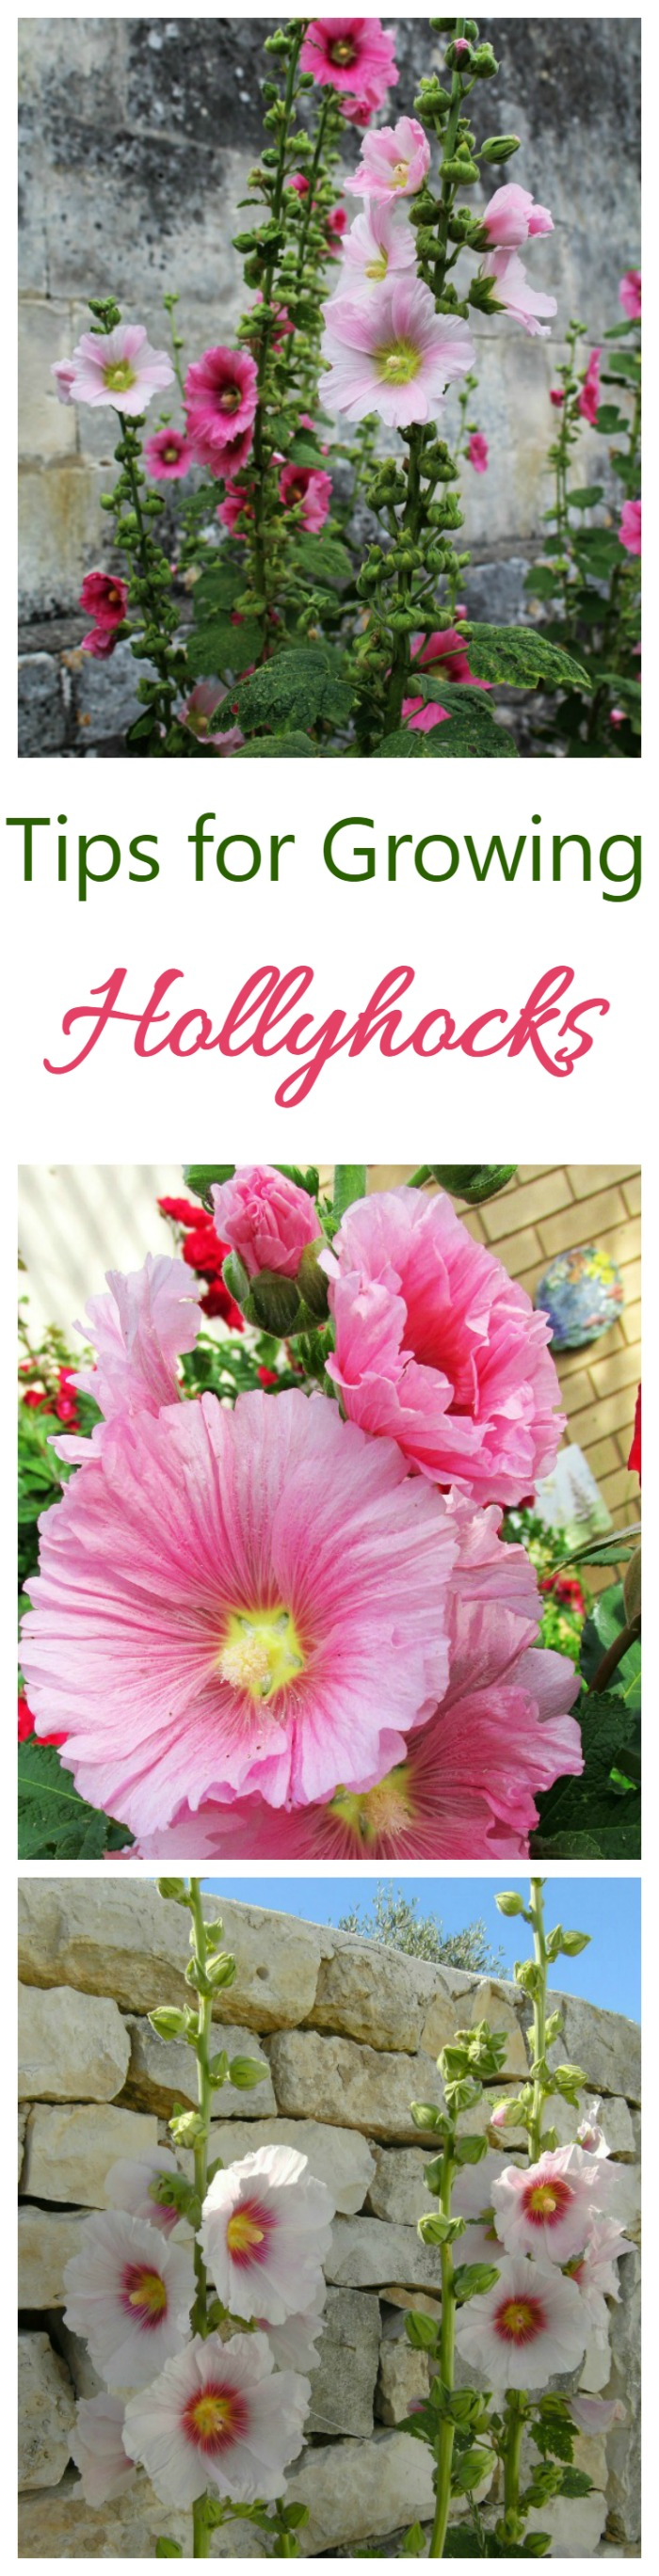 If you love cottage garden flowers, try growing hollyhocks. They add height to a garden border and bloom all summer long.